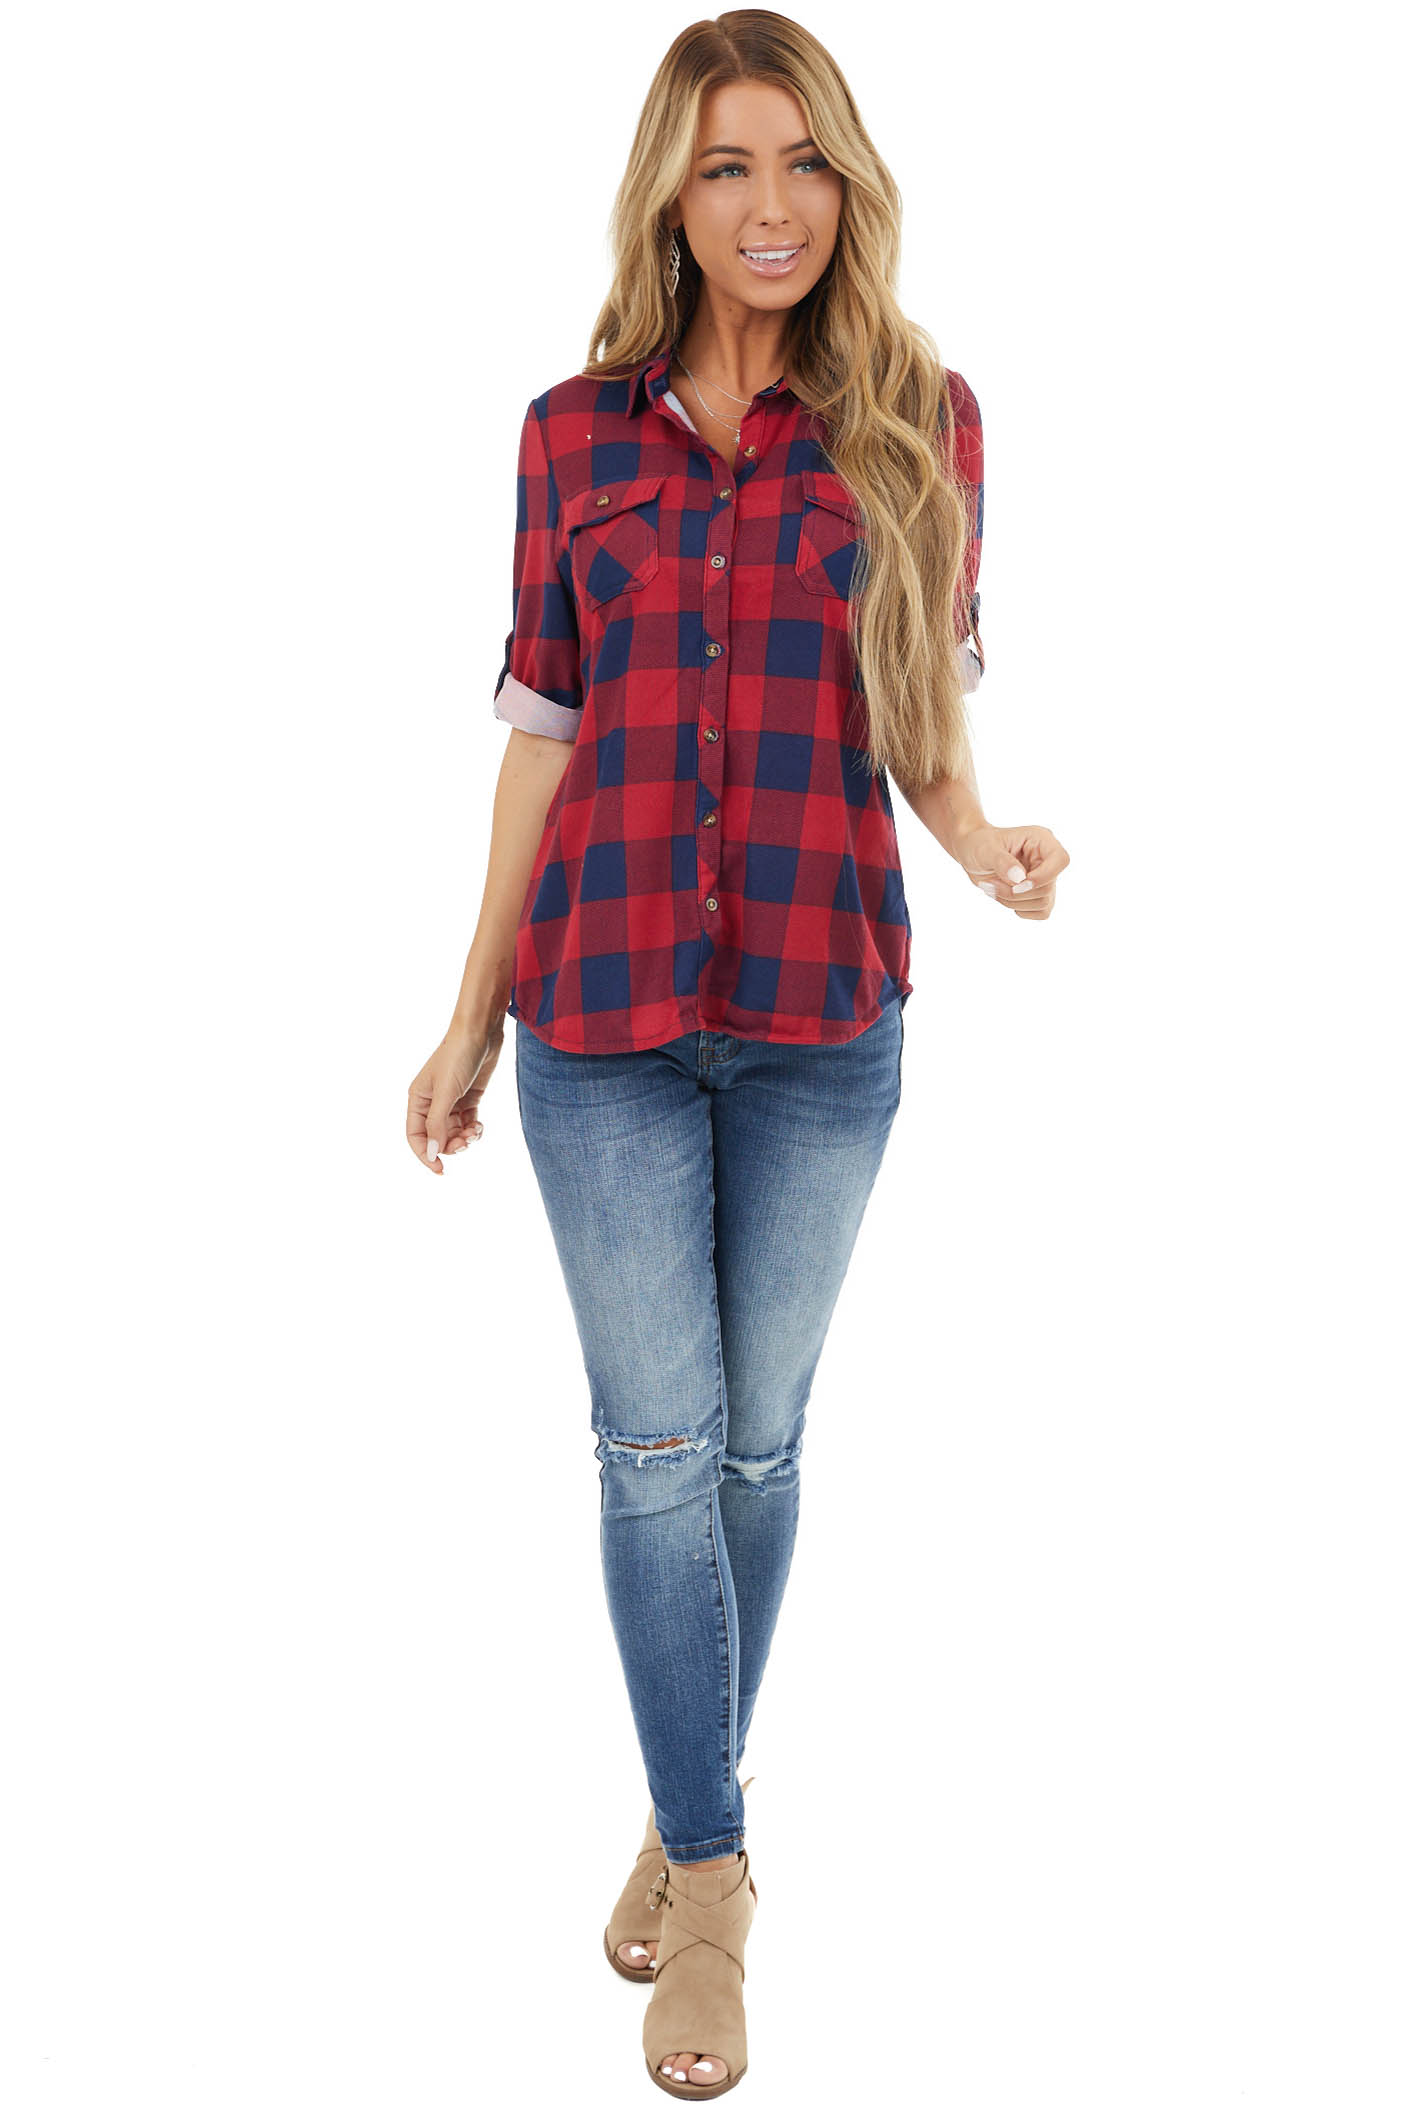 Cranberry and Navy Buffalo Plaid Top with Chest Pockets